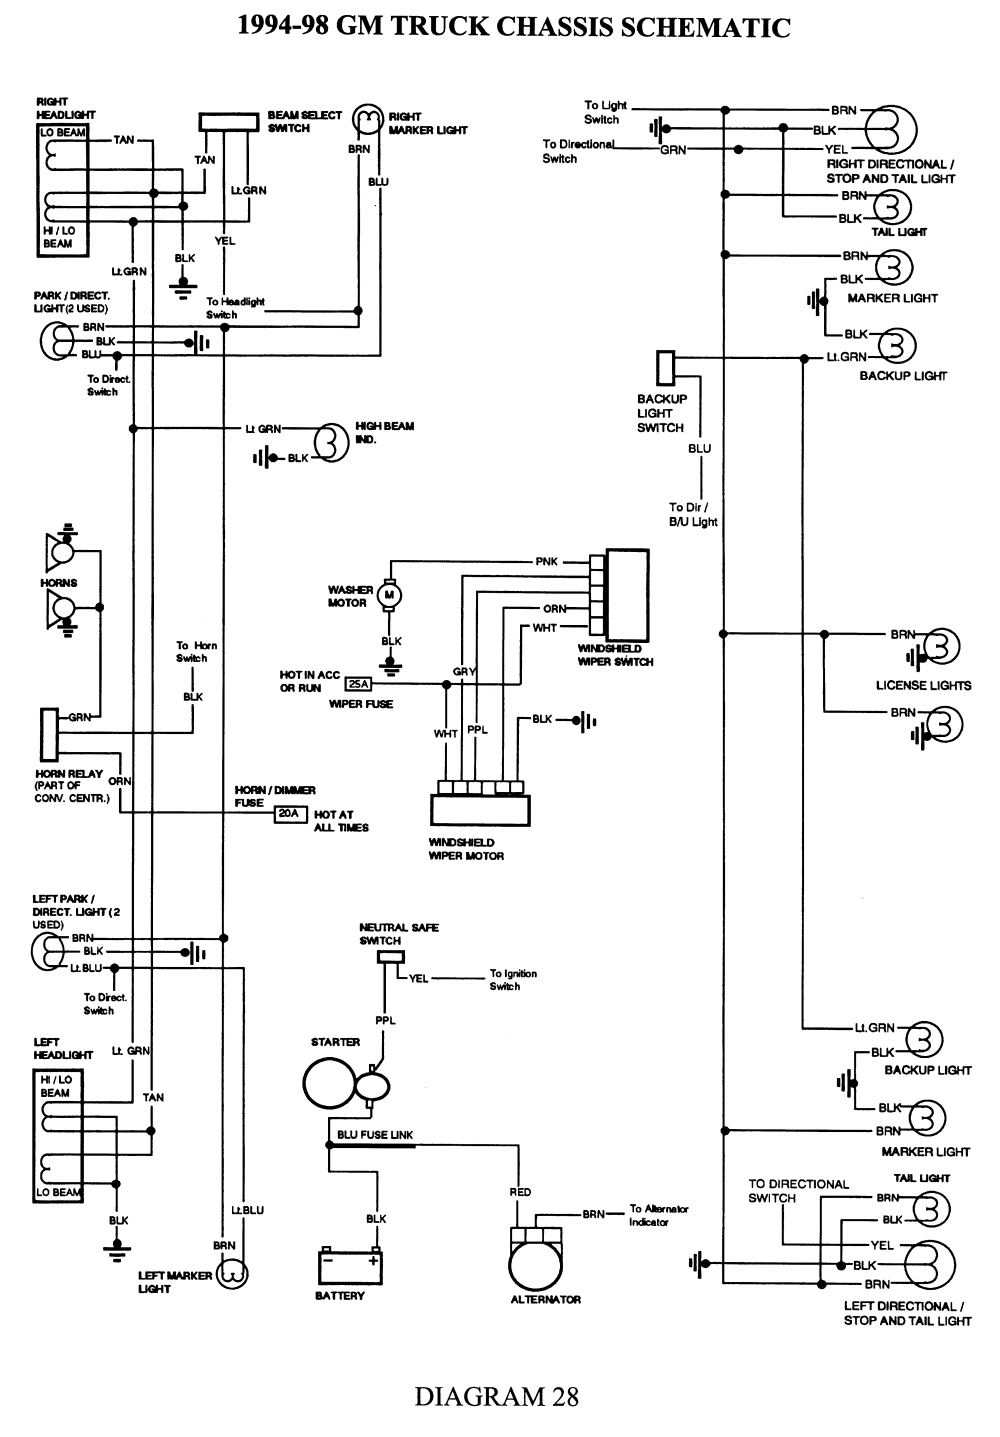 chevy silverado tail light wiring diagram Download-gmc sierra tail light wiring diagram Awesome 1995 Chevy Silverado Wiring Diagram 20 In 6 20-m